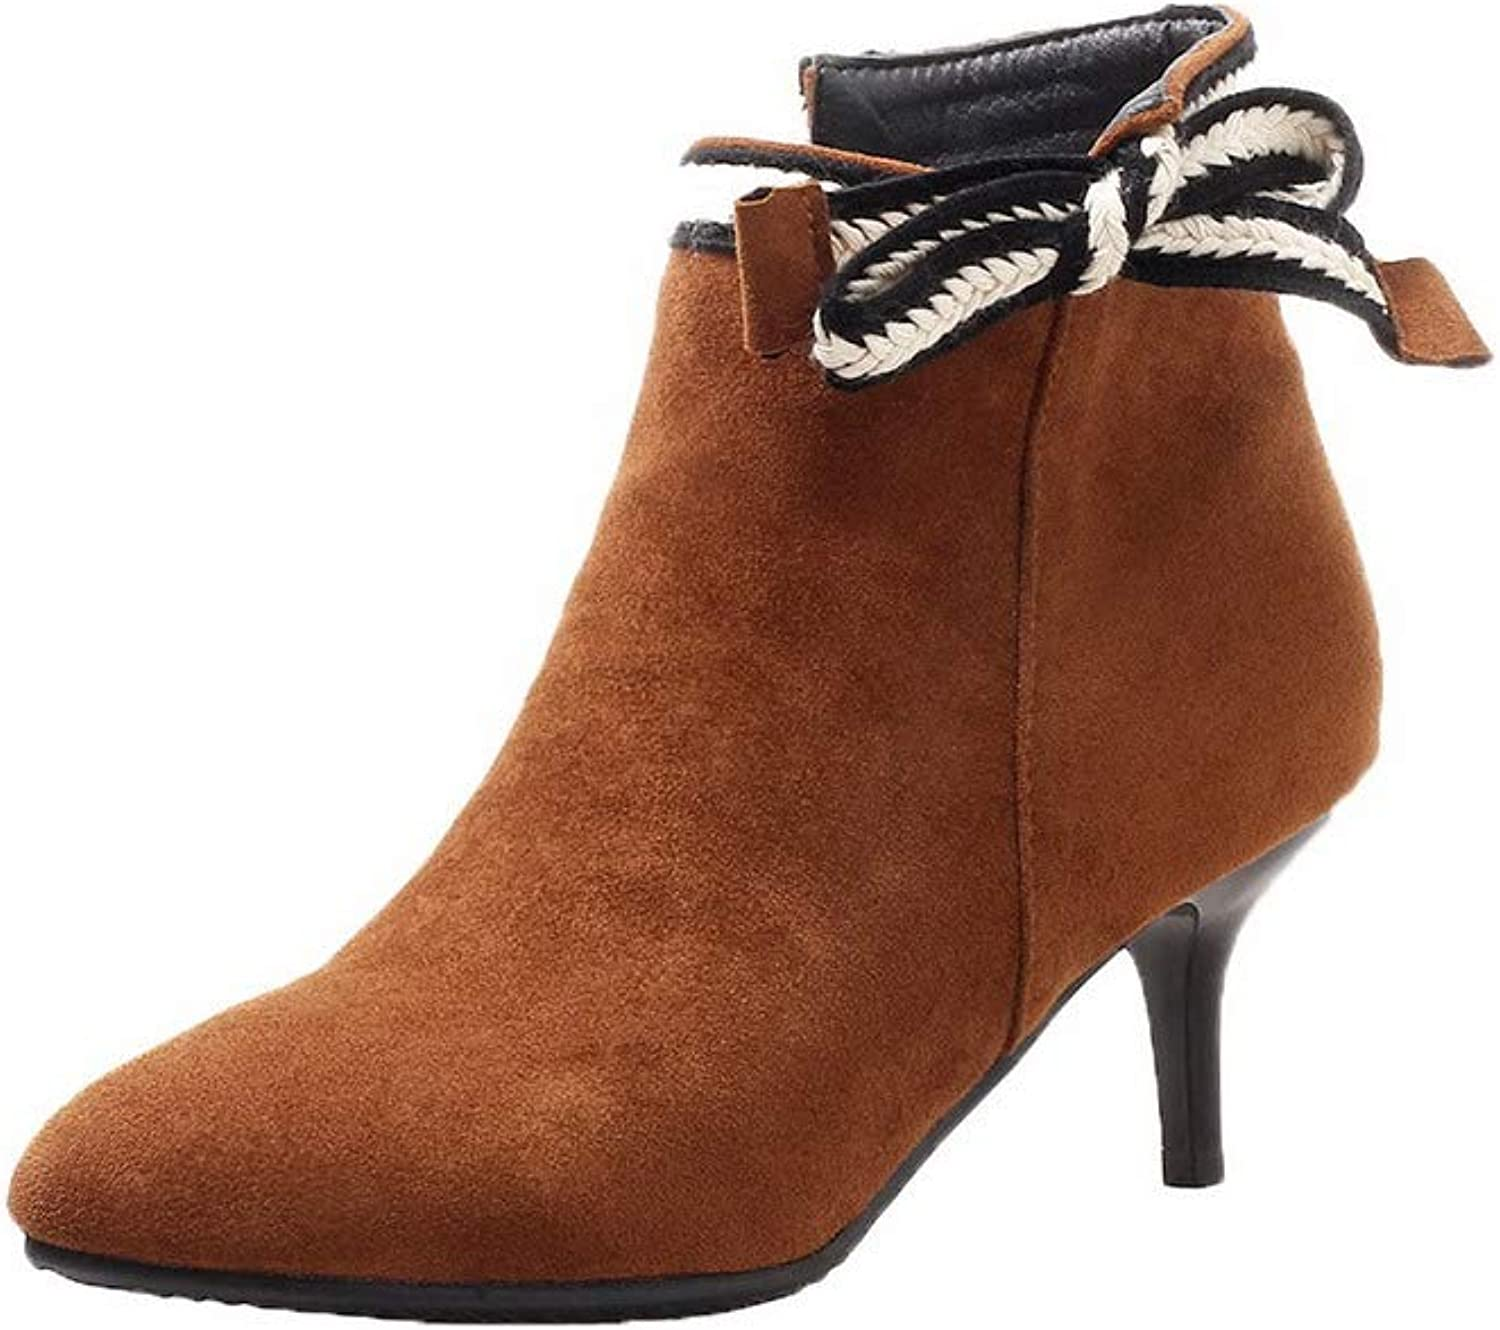 WeenFashion Women's Assorted color Imitated Suede Zipper Closed-Toe Boots, AMGXX119460